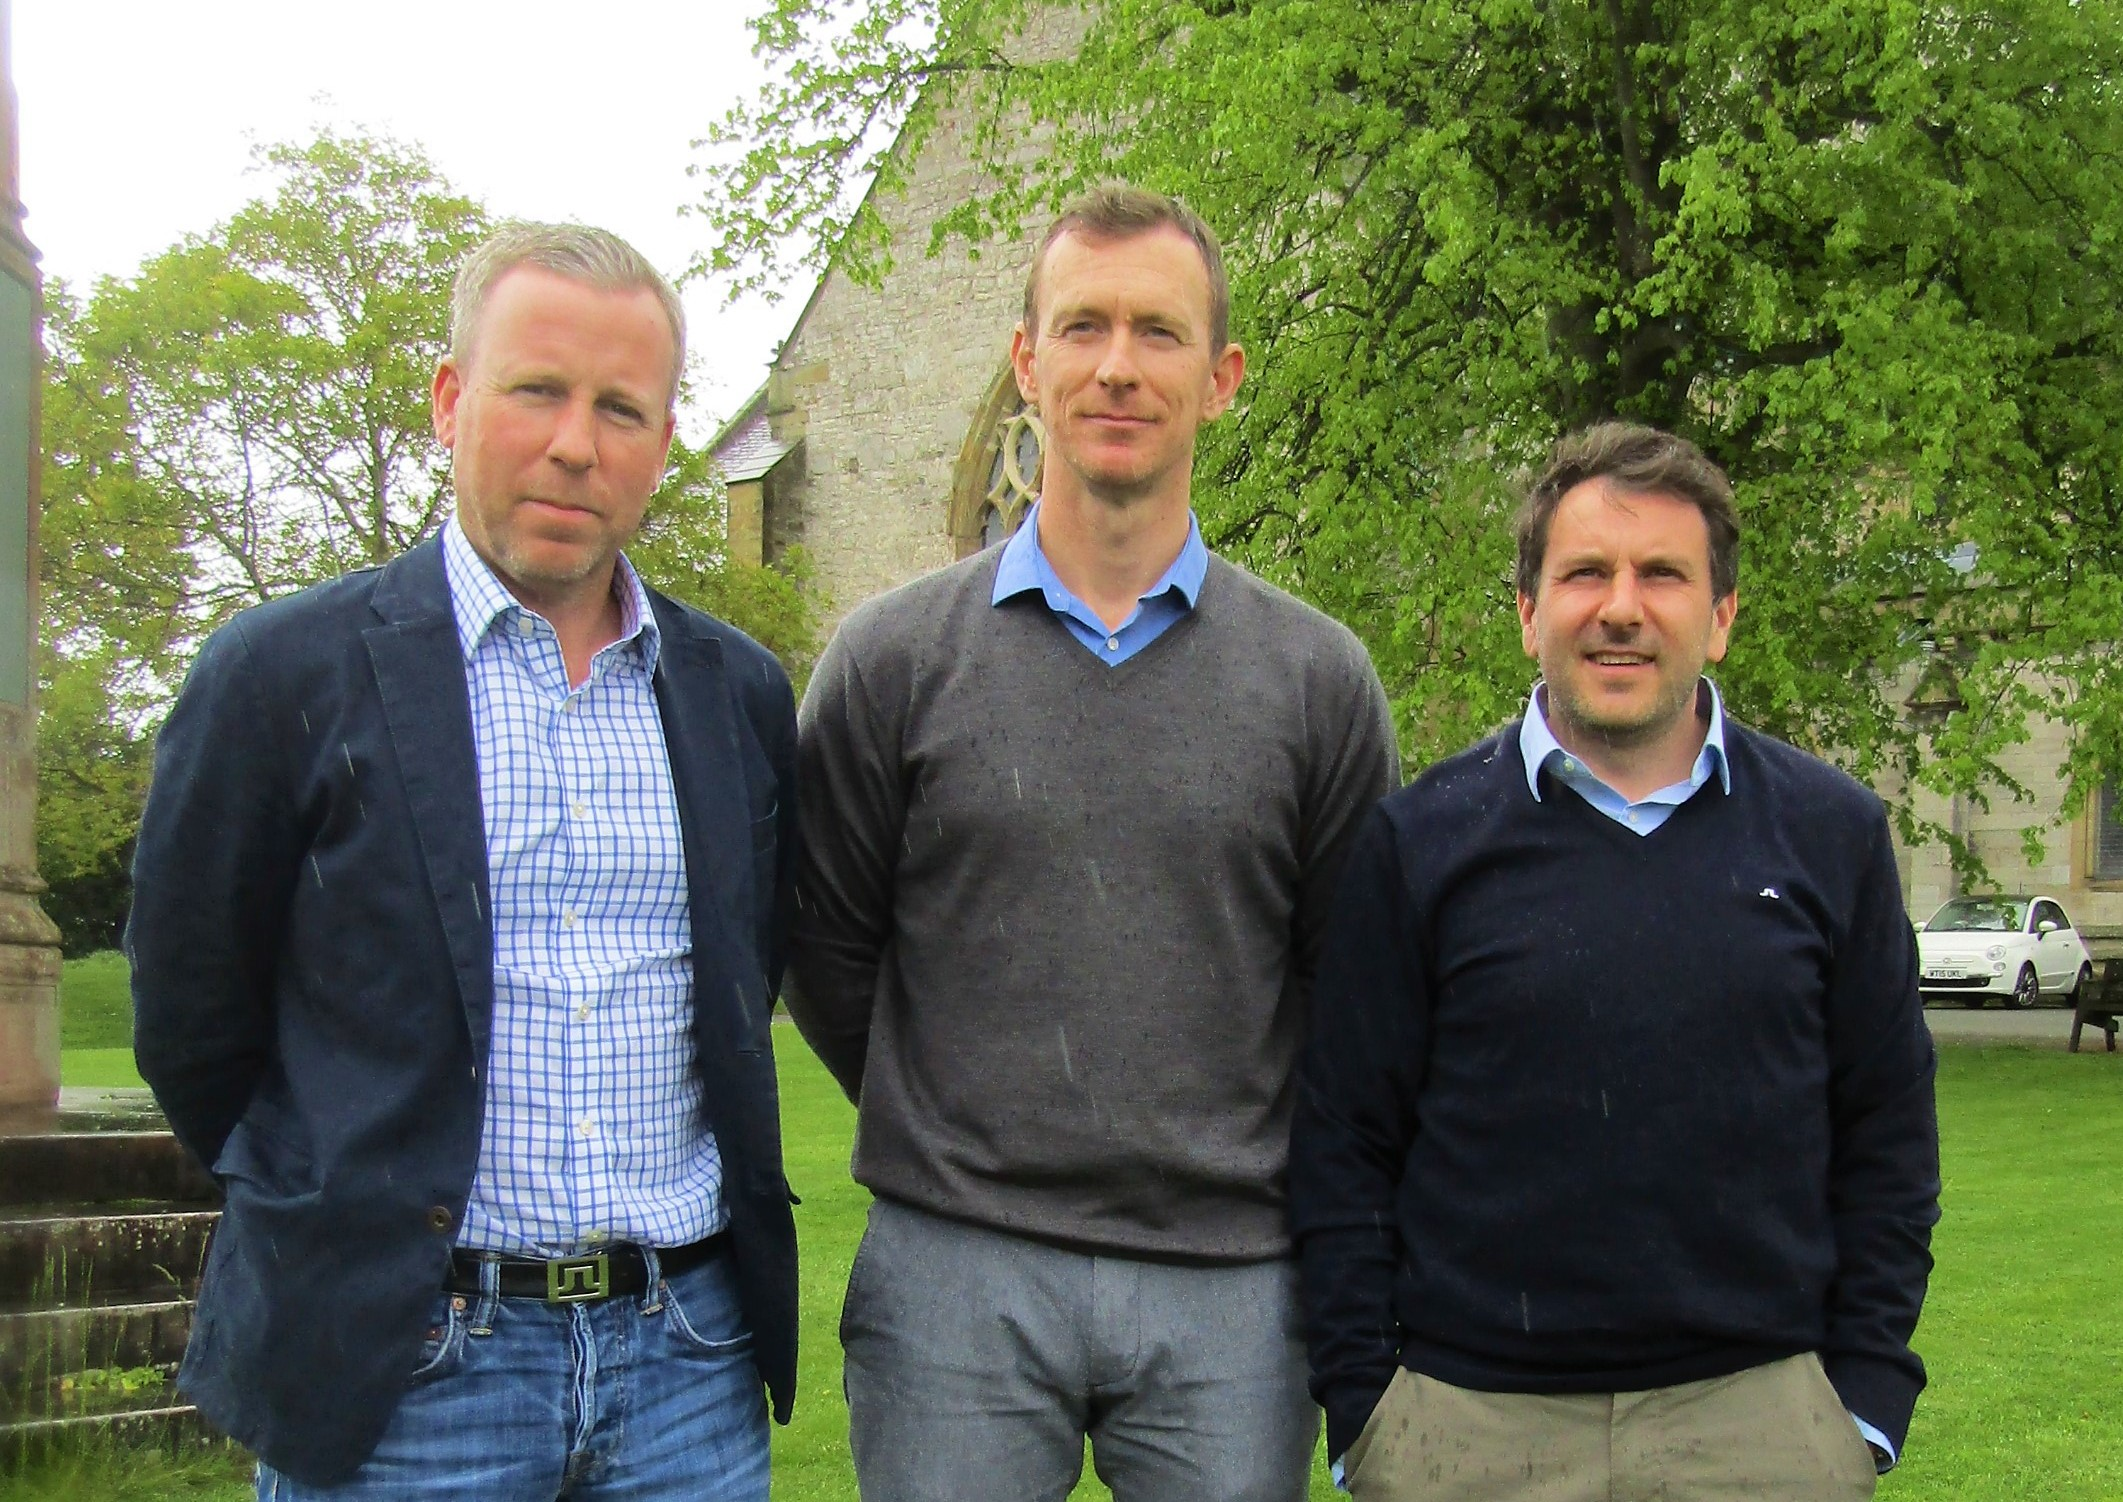 From left: Richard Lloyd Jones, Richard Pape and Gareth Jones.